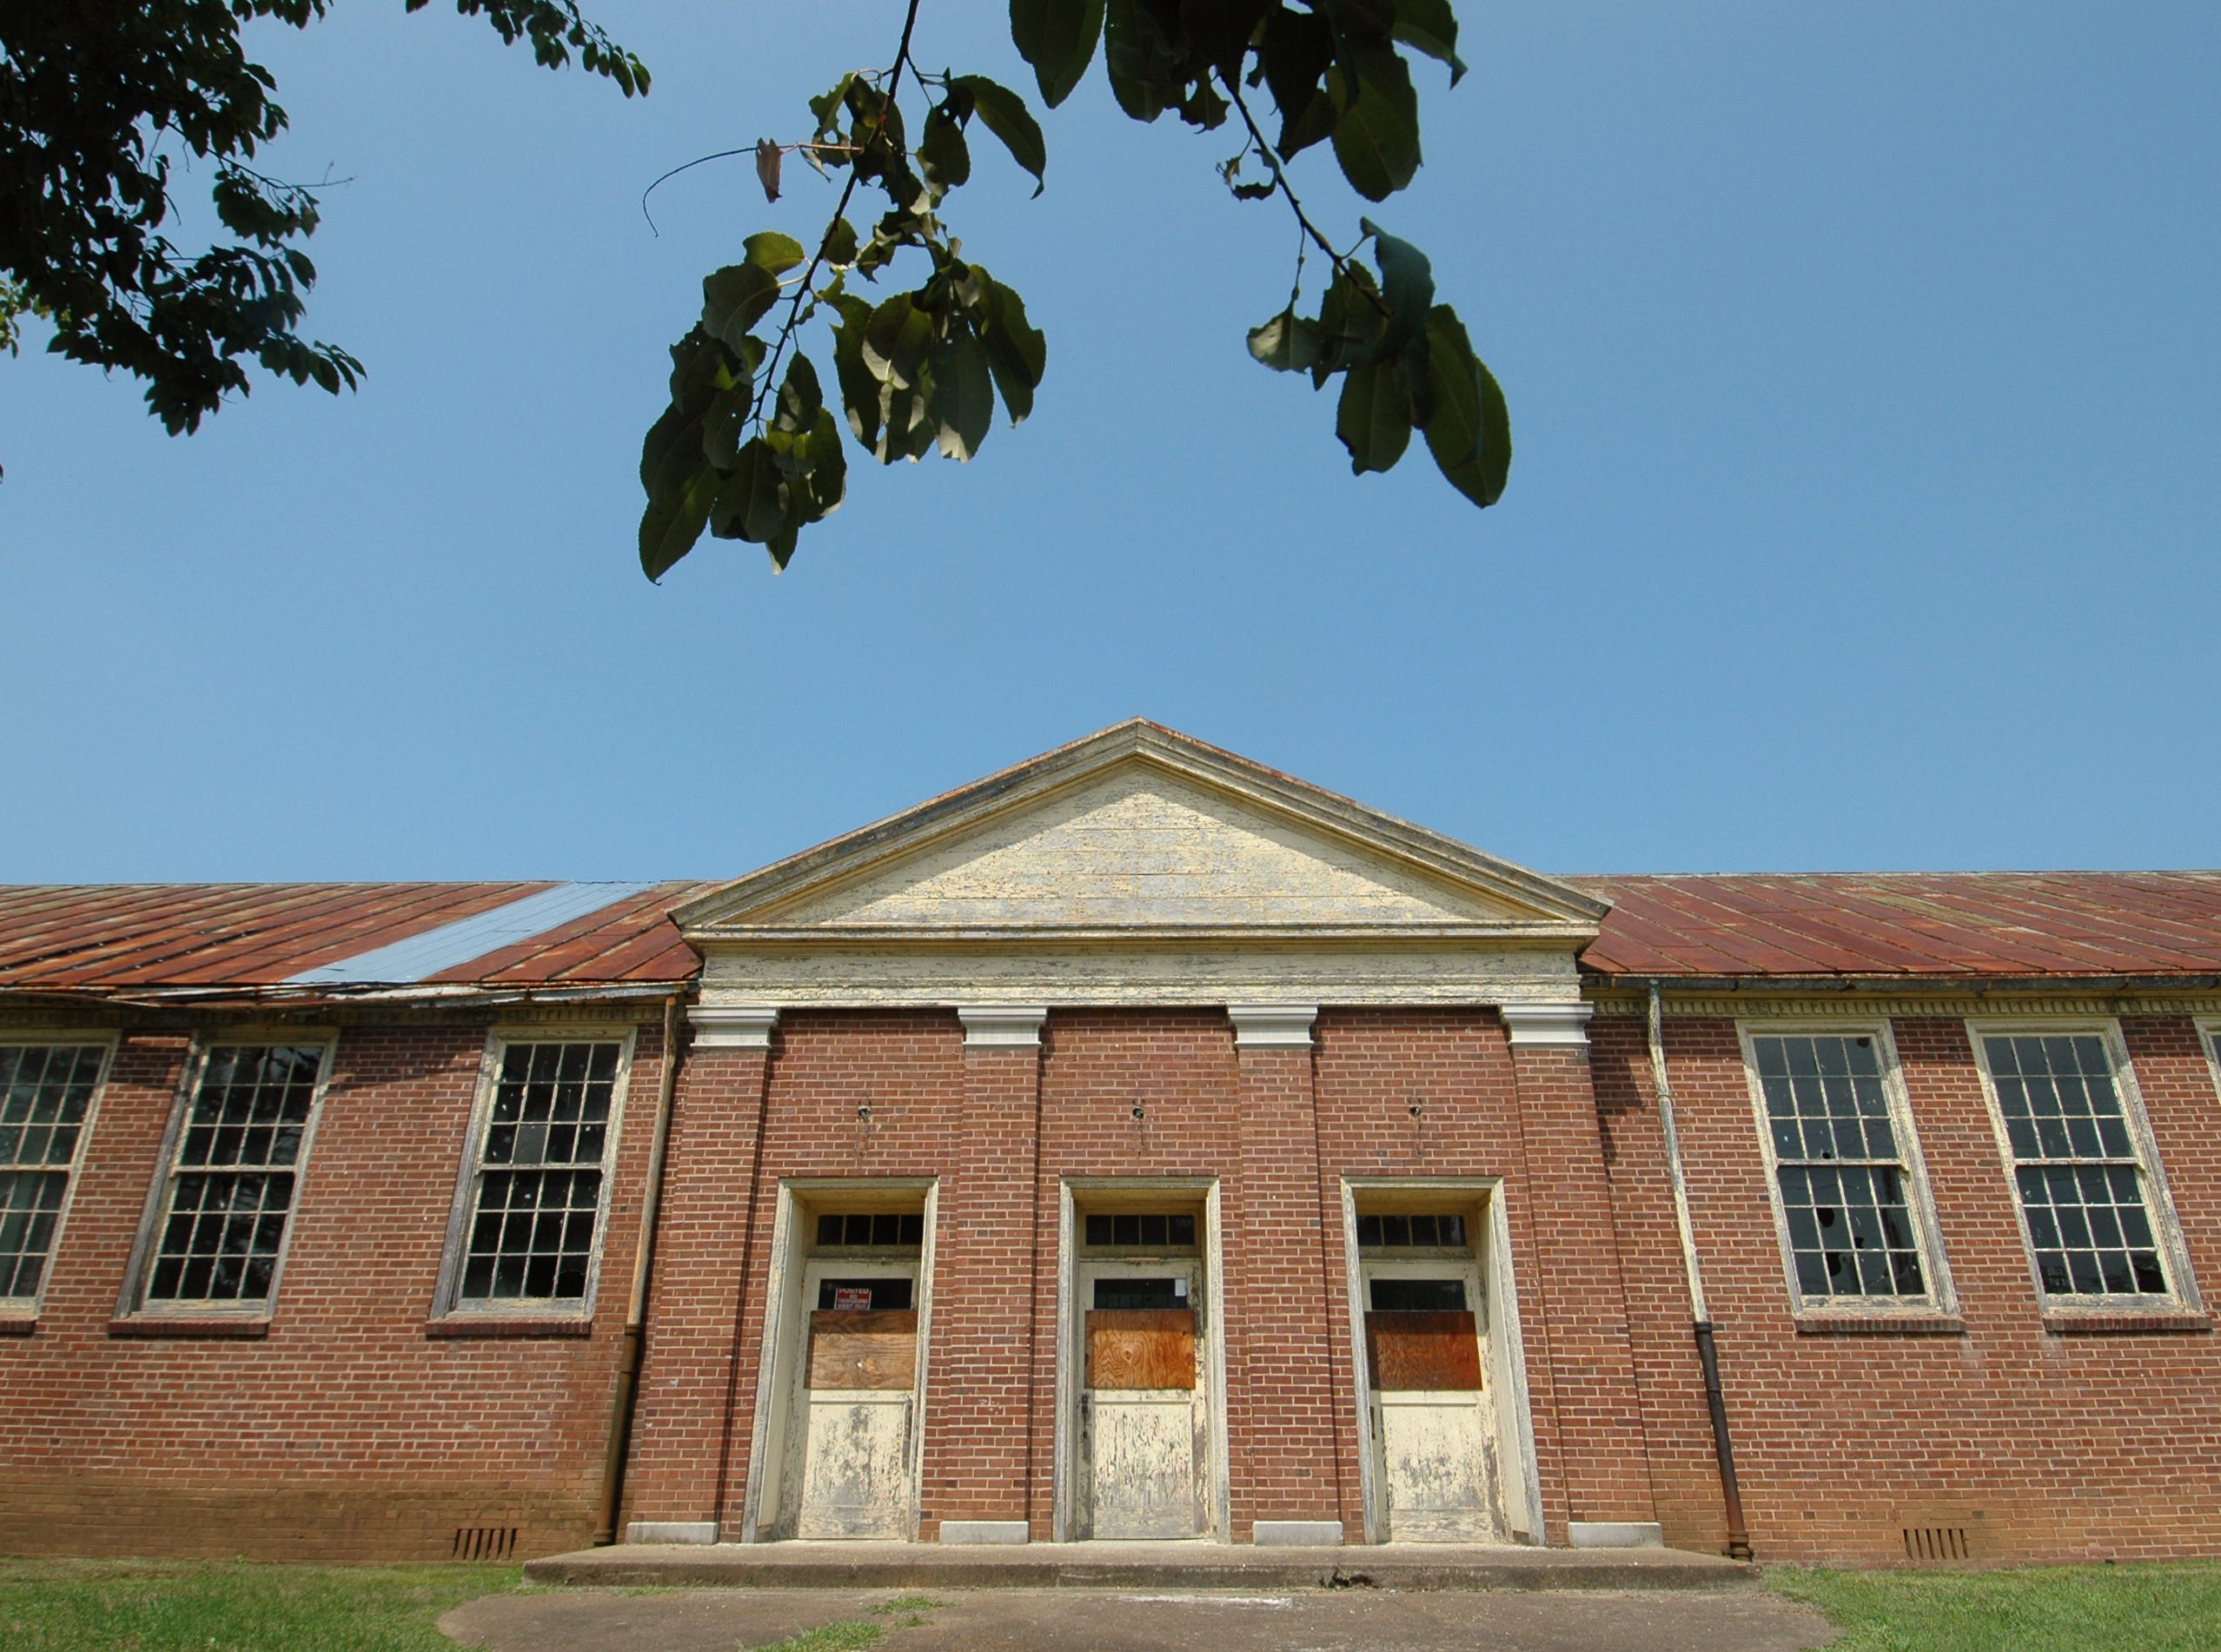 TRACEY TRUMBULL/NEWS SENTINEL 080107 WEDNESDAY - Knox County has more than several older school buildings that go unused and have fallen in to differing states of disrepair. Boarded doors and broken windows  display the plight of the Old South High School in south Knoxville.